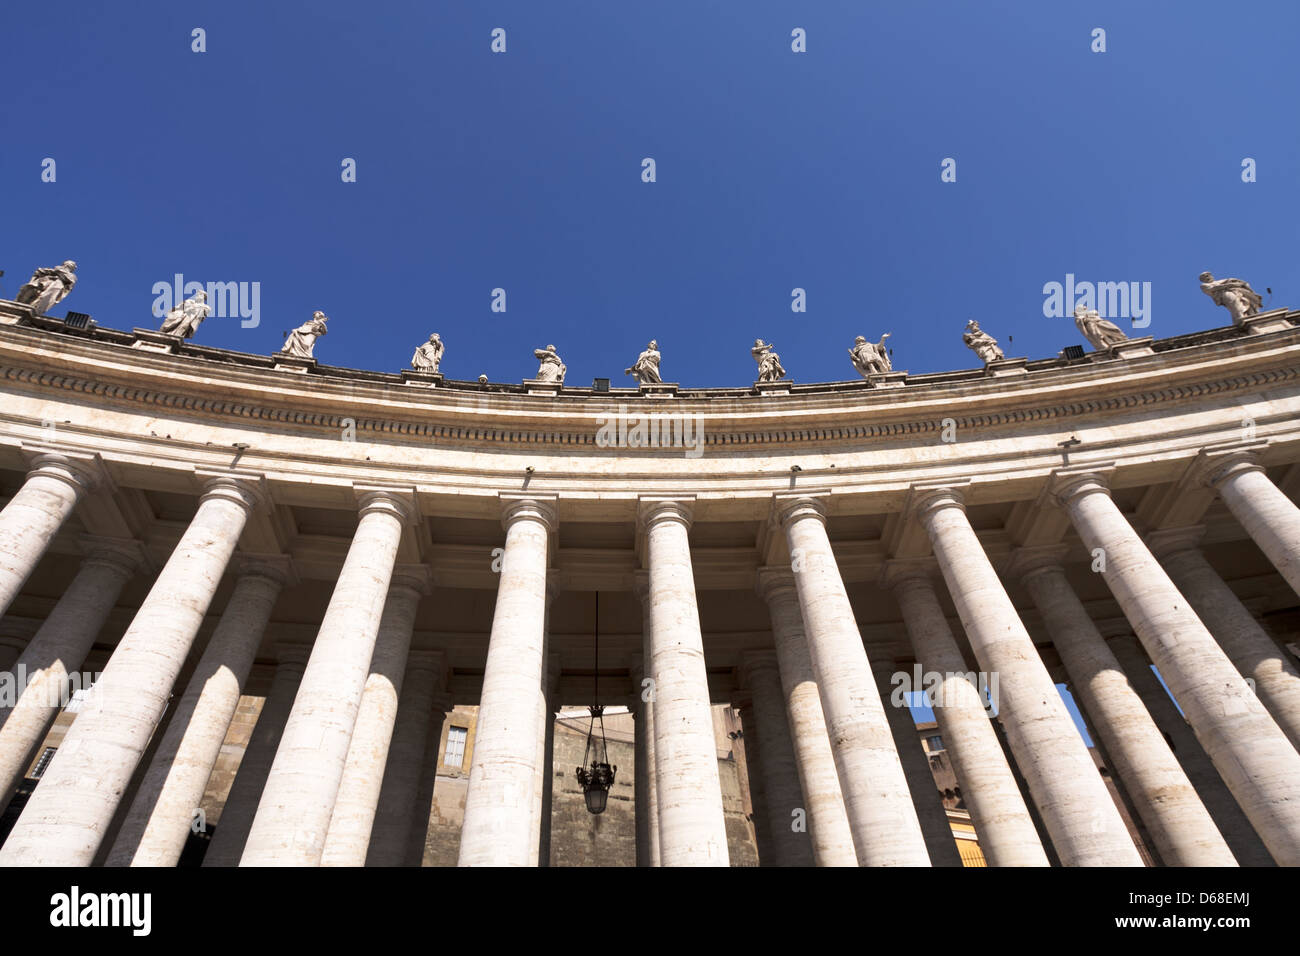 Statues of saints in the colonnade, Vatican - Stock Image